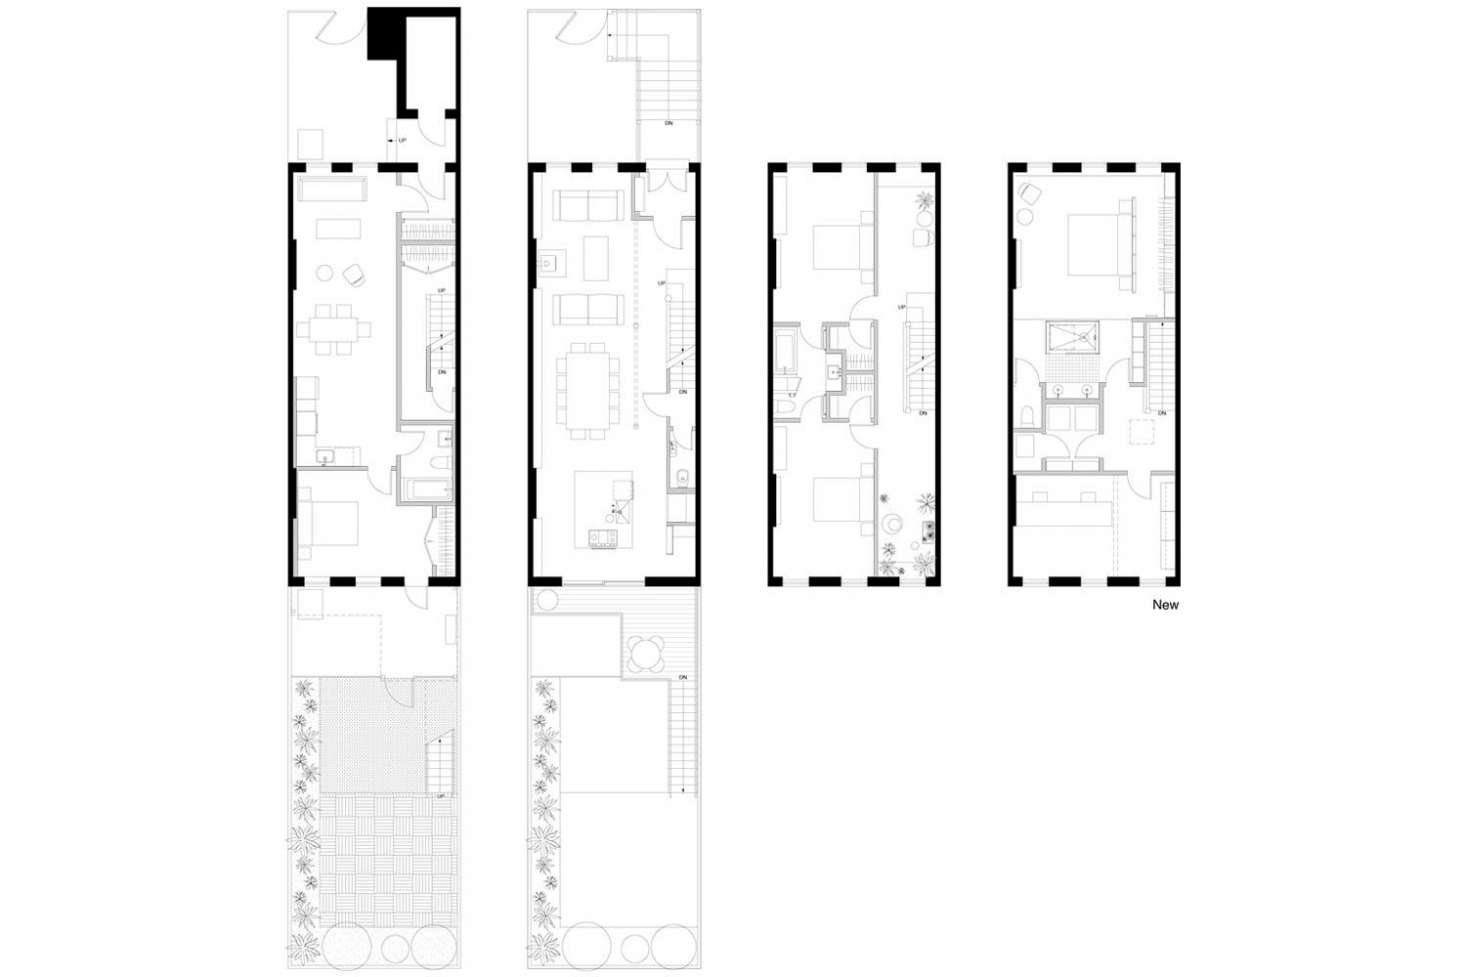 A view of the architectural plans. The garden floor is a rental unit, while Lauren and Keith live on the three floors above.